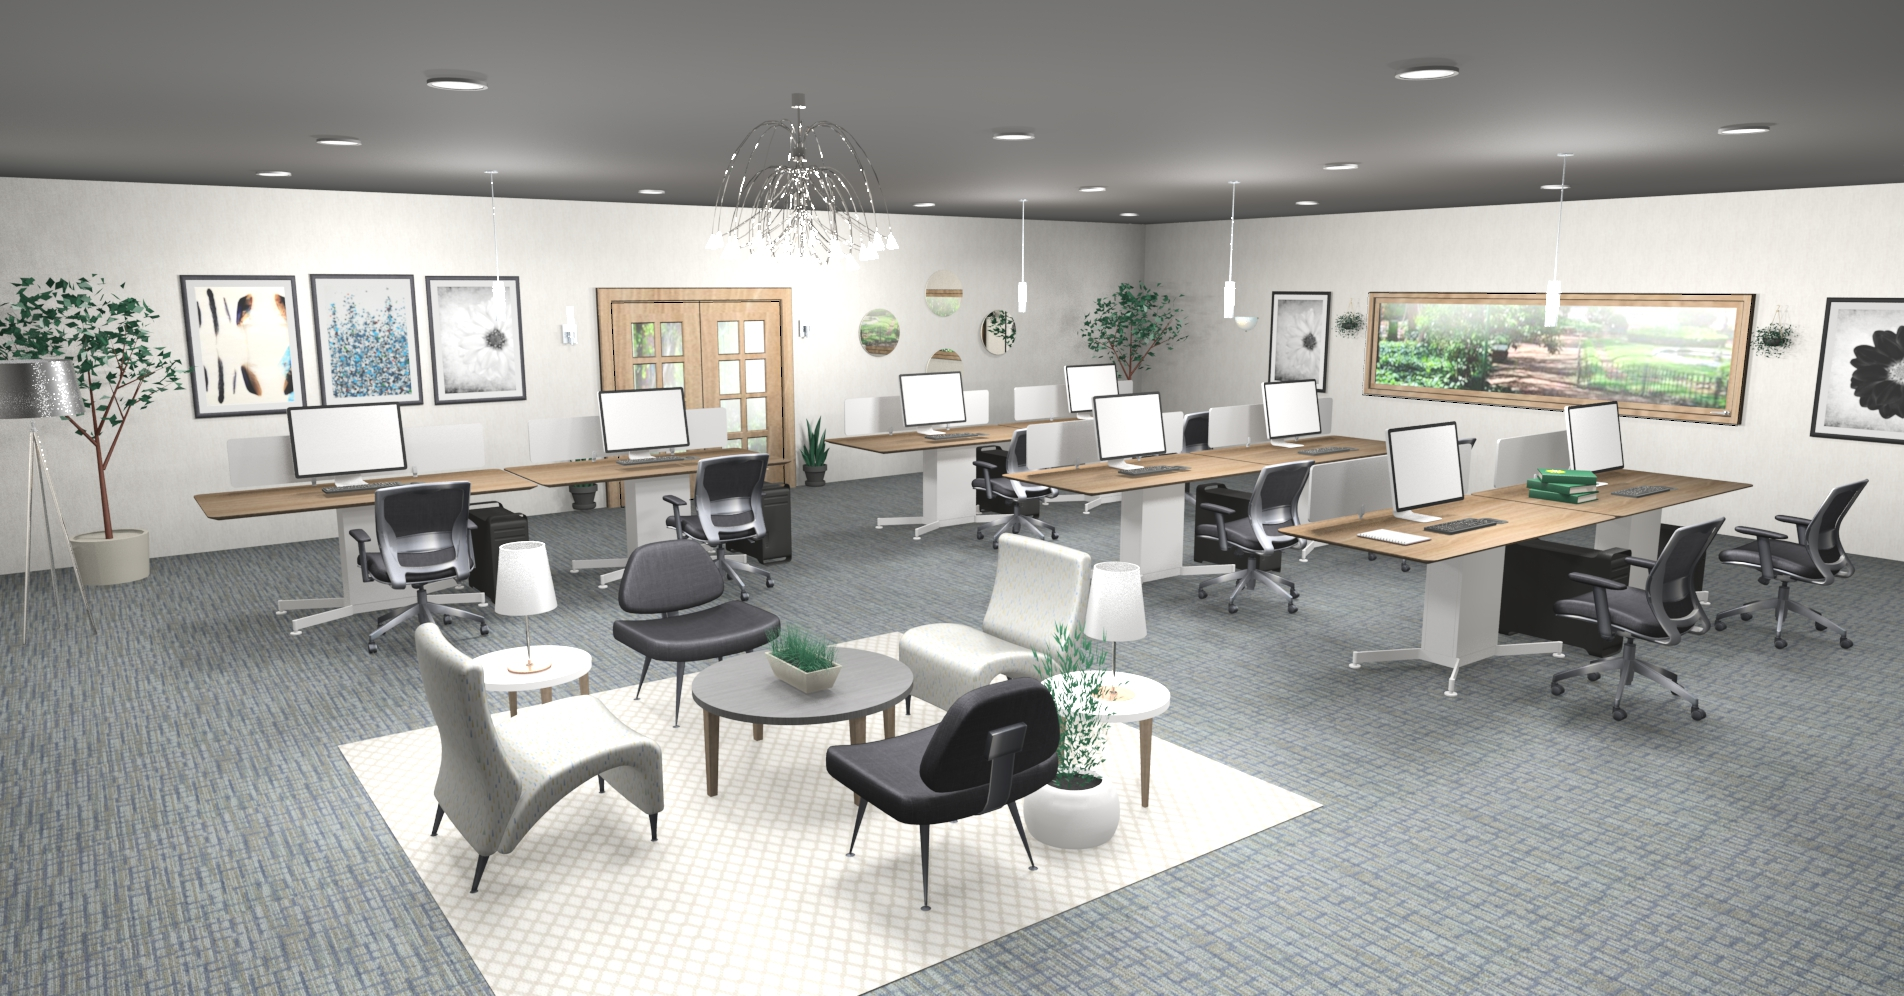 6 Latest Office Design and Layout Trends in 2019